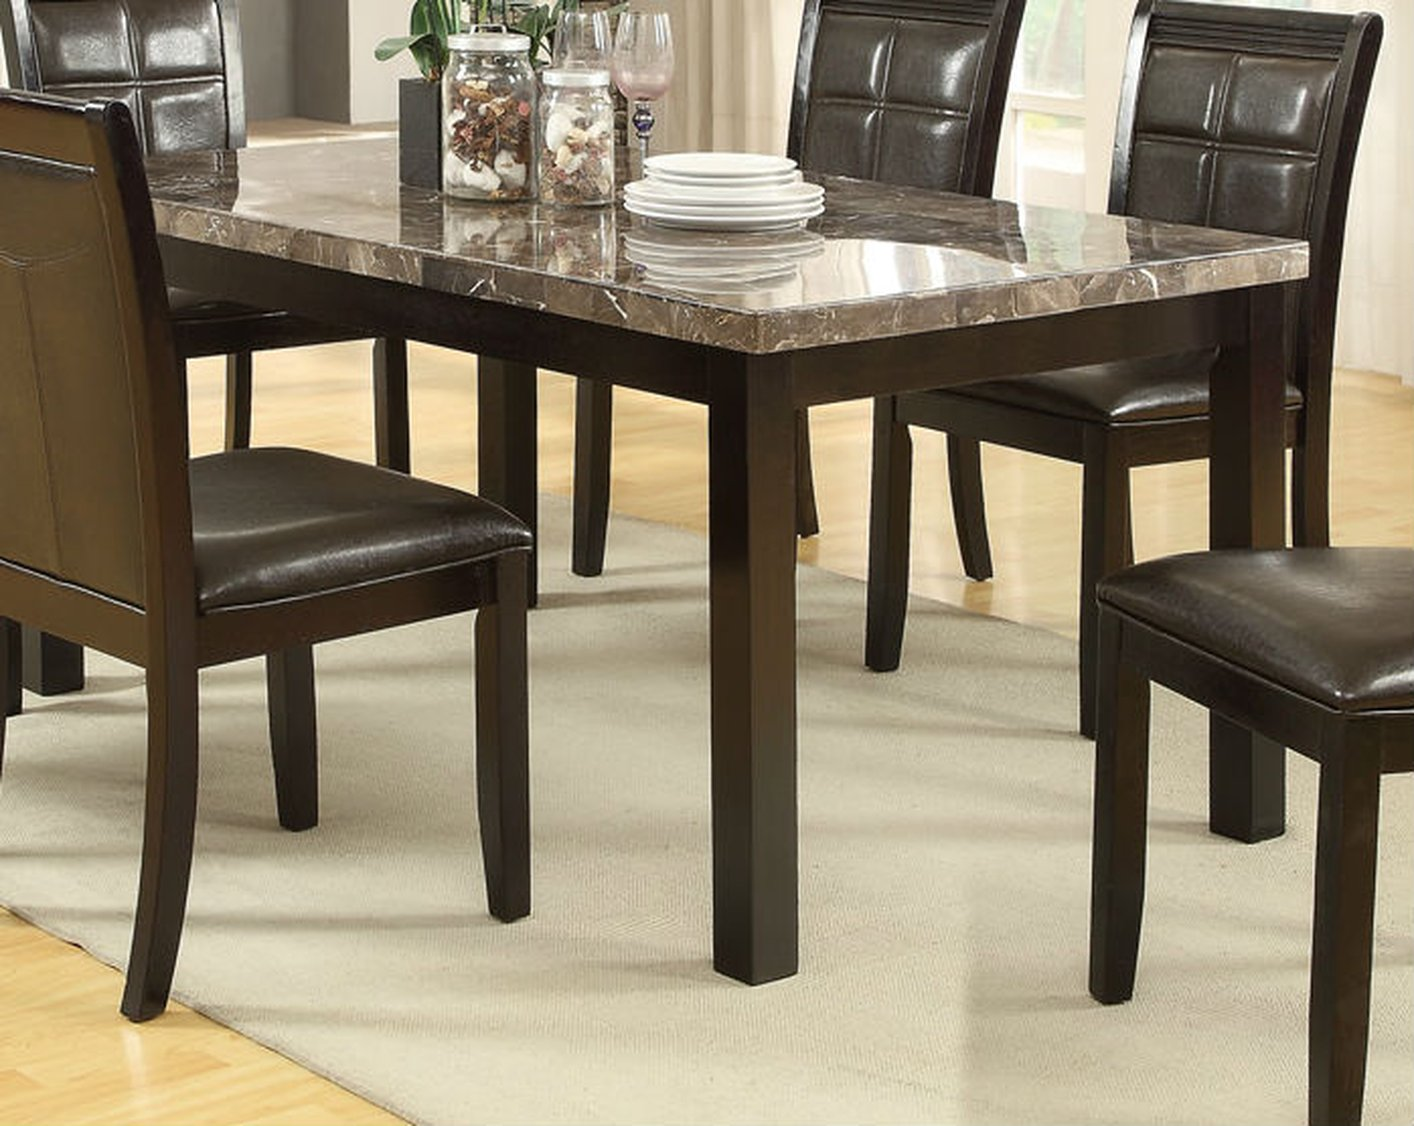 brown marble dining table DGLOHFR